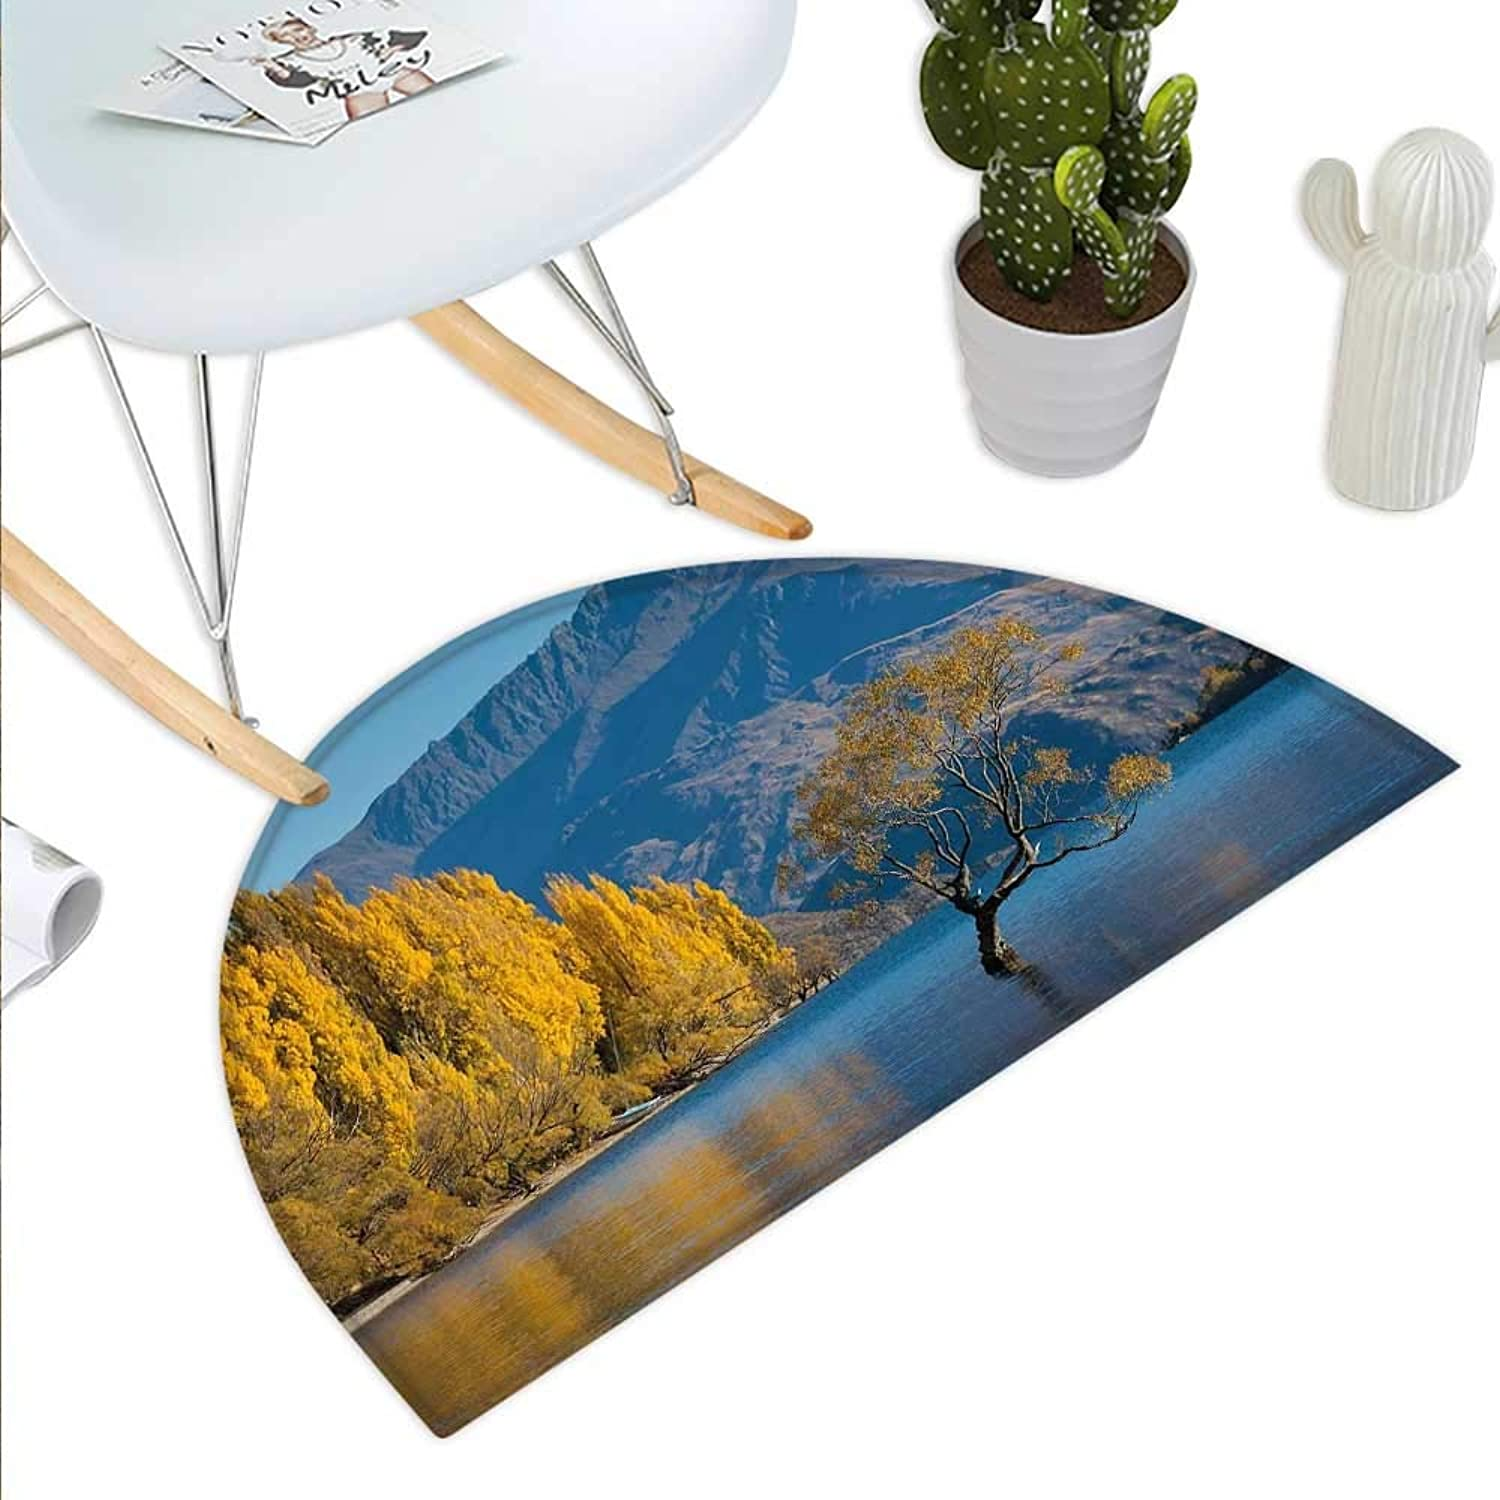 Nature Semicircle Doormat Sunken Tree Lake on Mountain Range Exquisite Rural New Zealand Scenery Halfmoon doormats H 39.3  xD 59  Earth Yellow Pale bluee